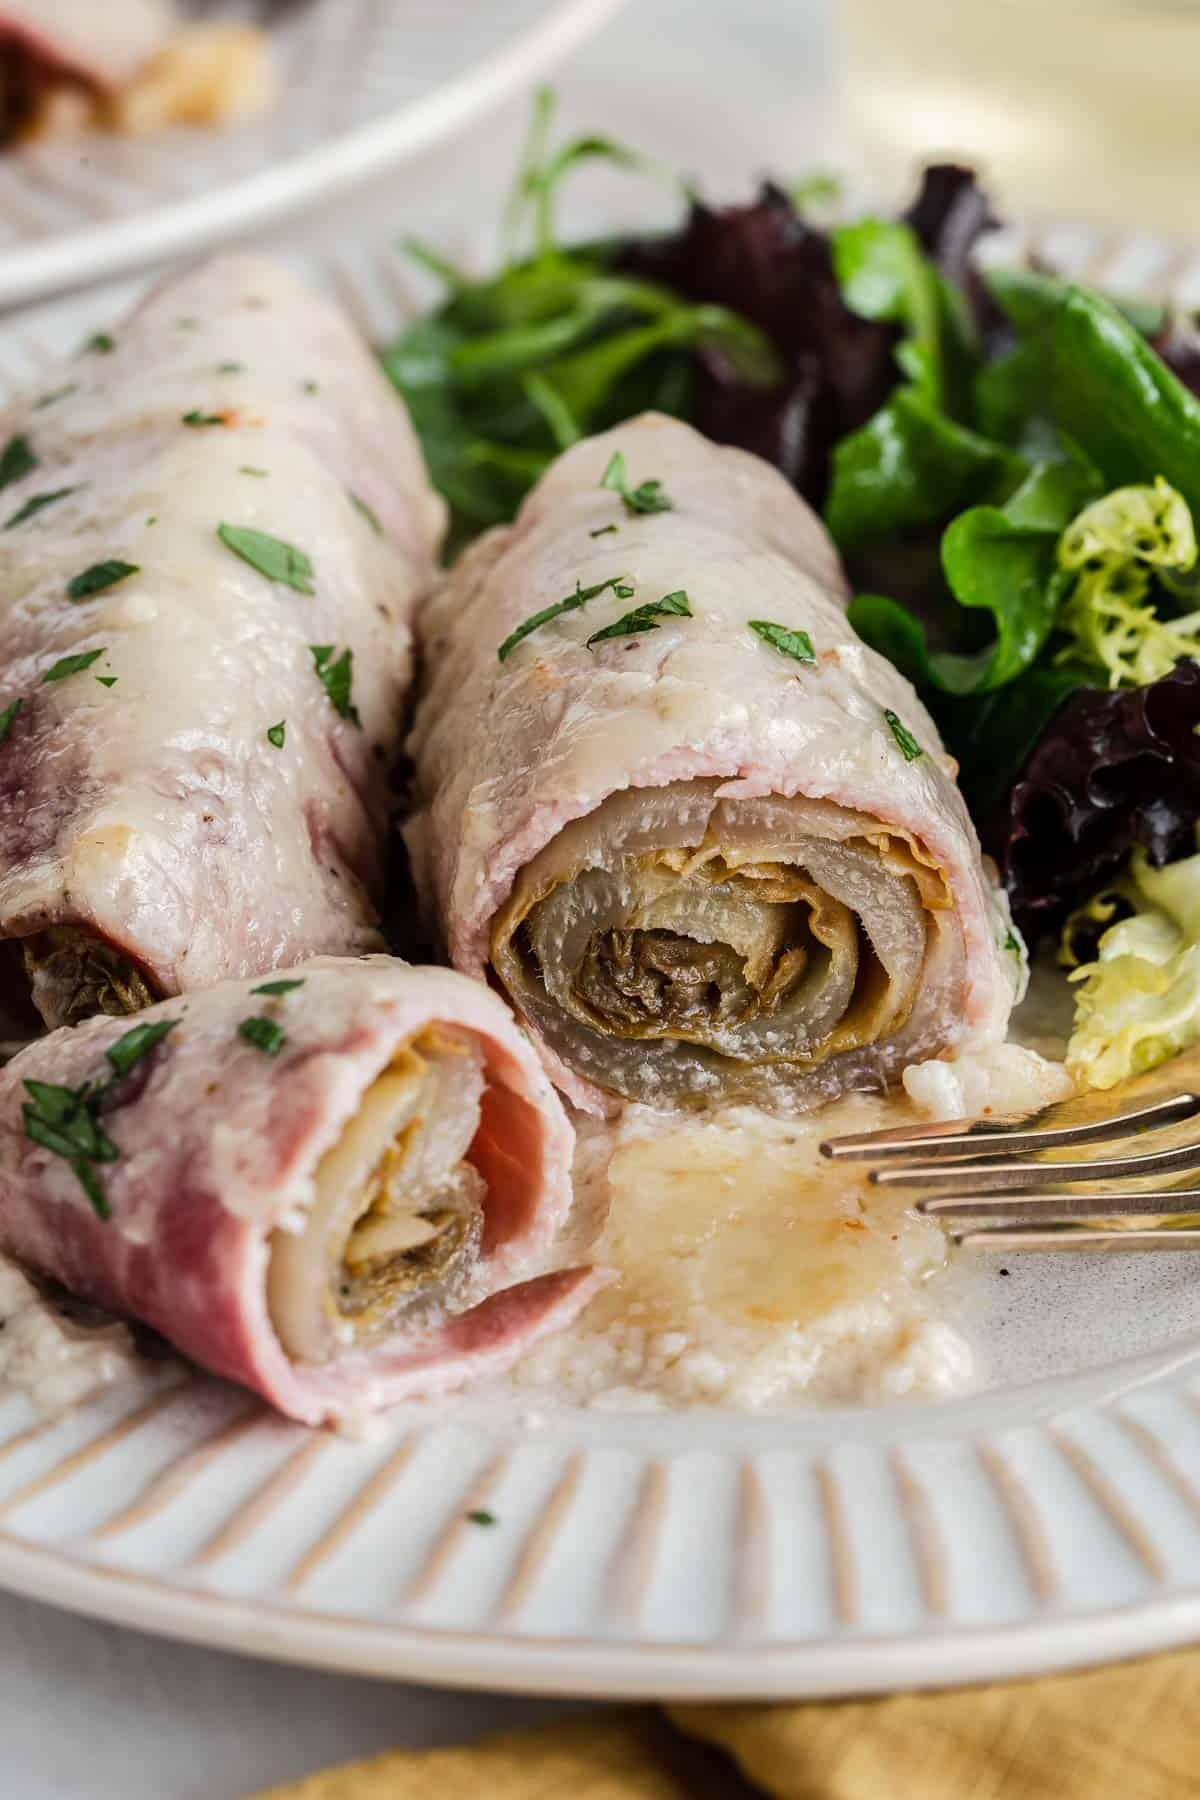 Endive wrapped in ham that has been sliced open.